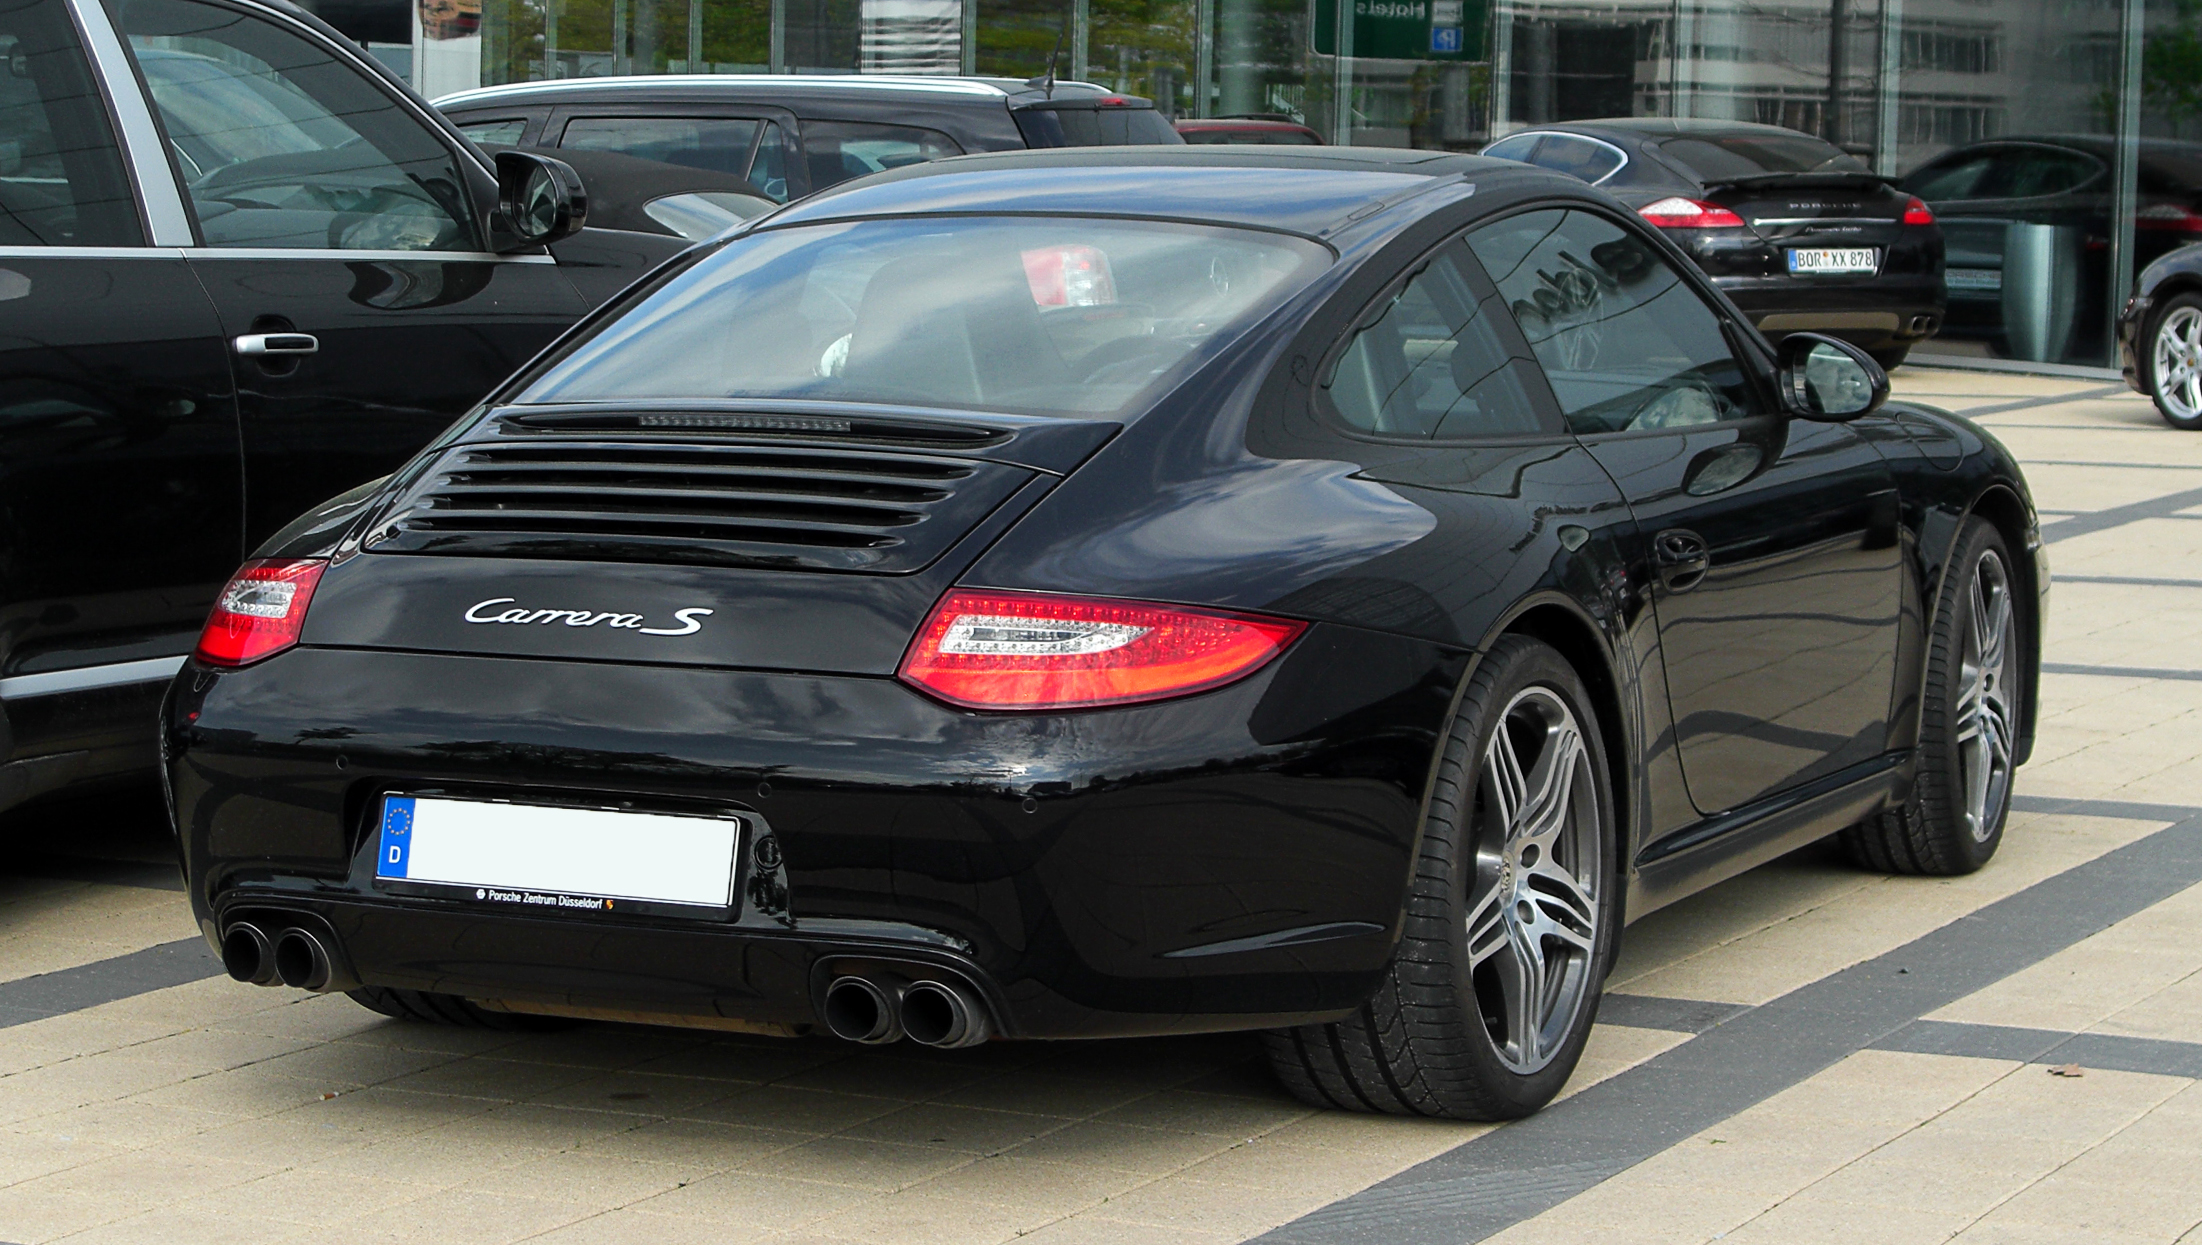 file porsche 911 carrera s coup 997 facelift heckansicht 1 17 april 2011 d sseldorf. Black Bedroom Furniture Sets. Home Design Ideas